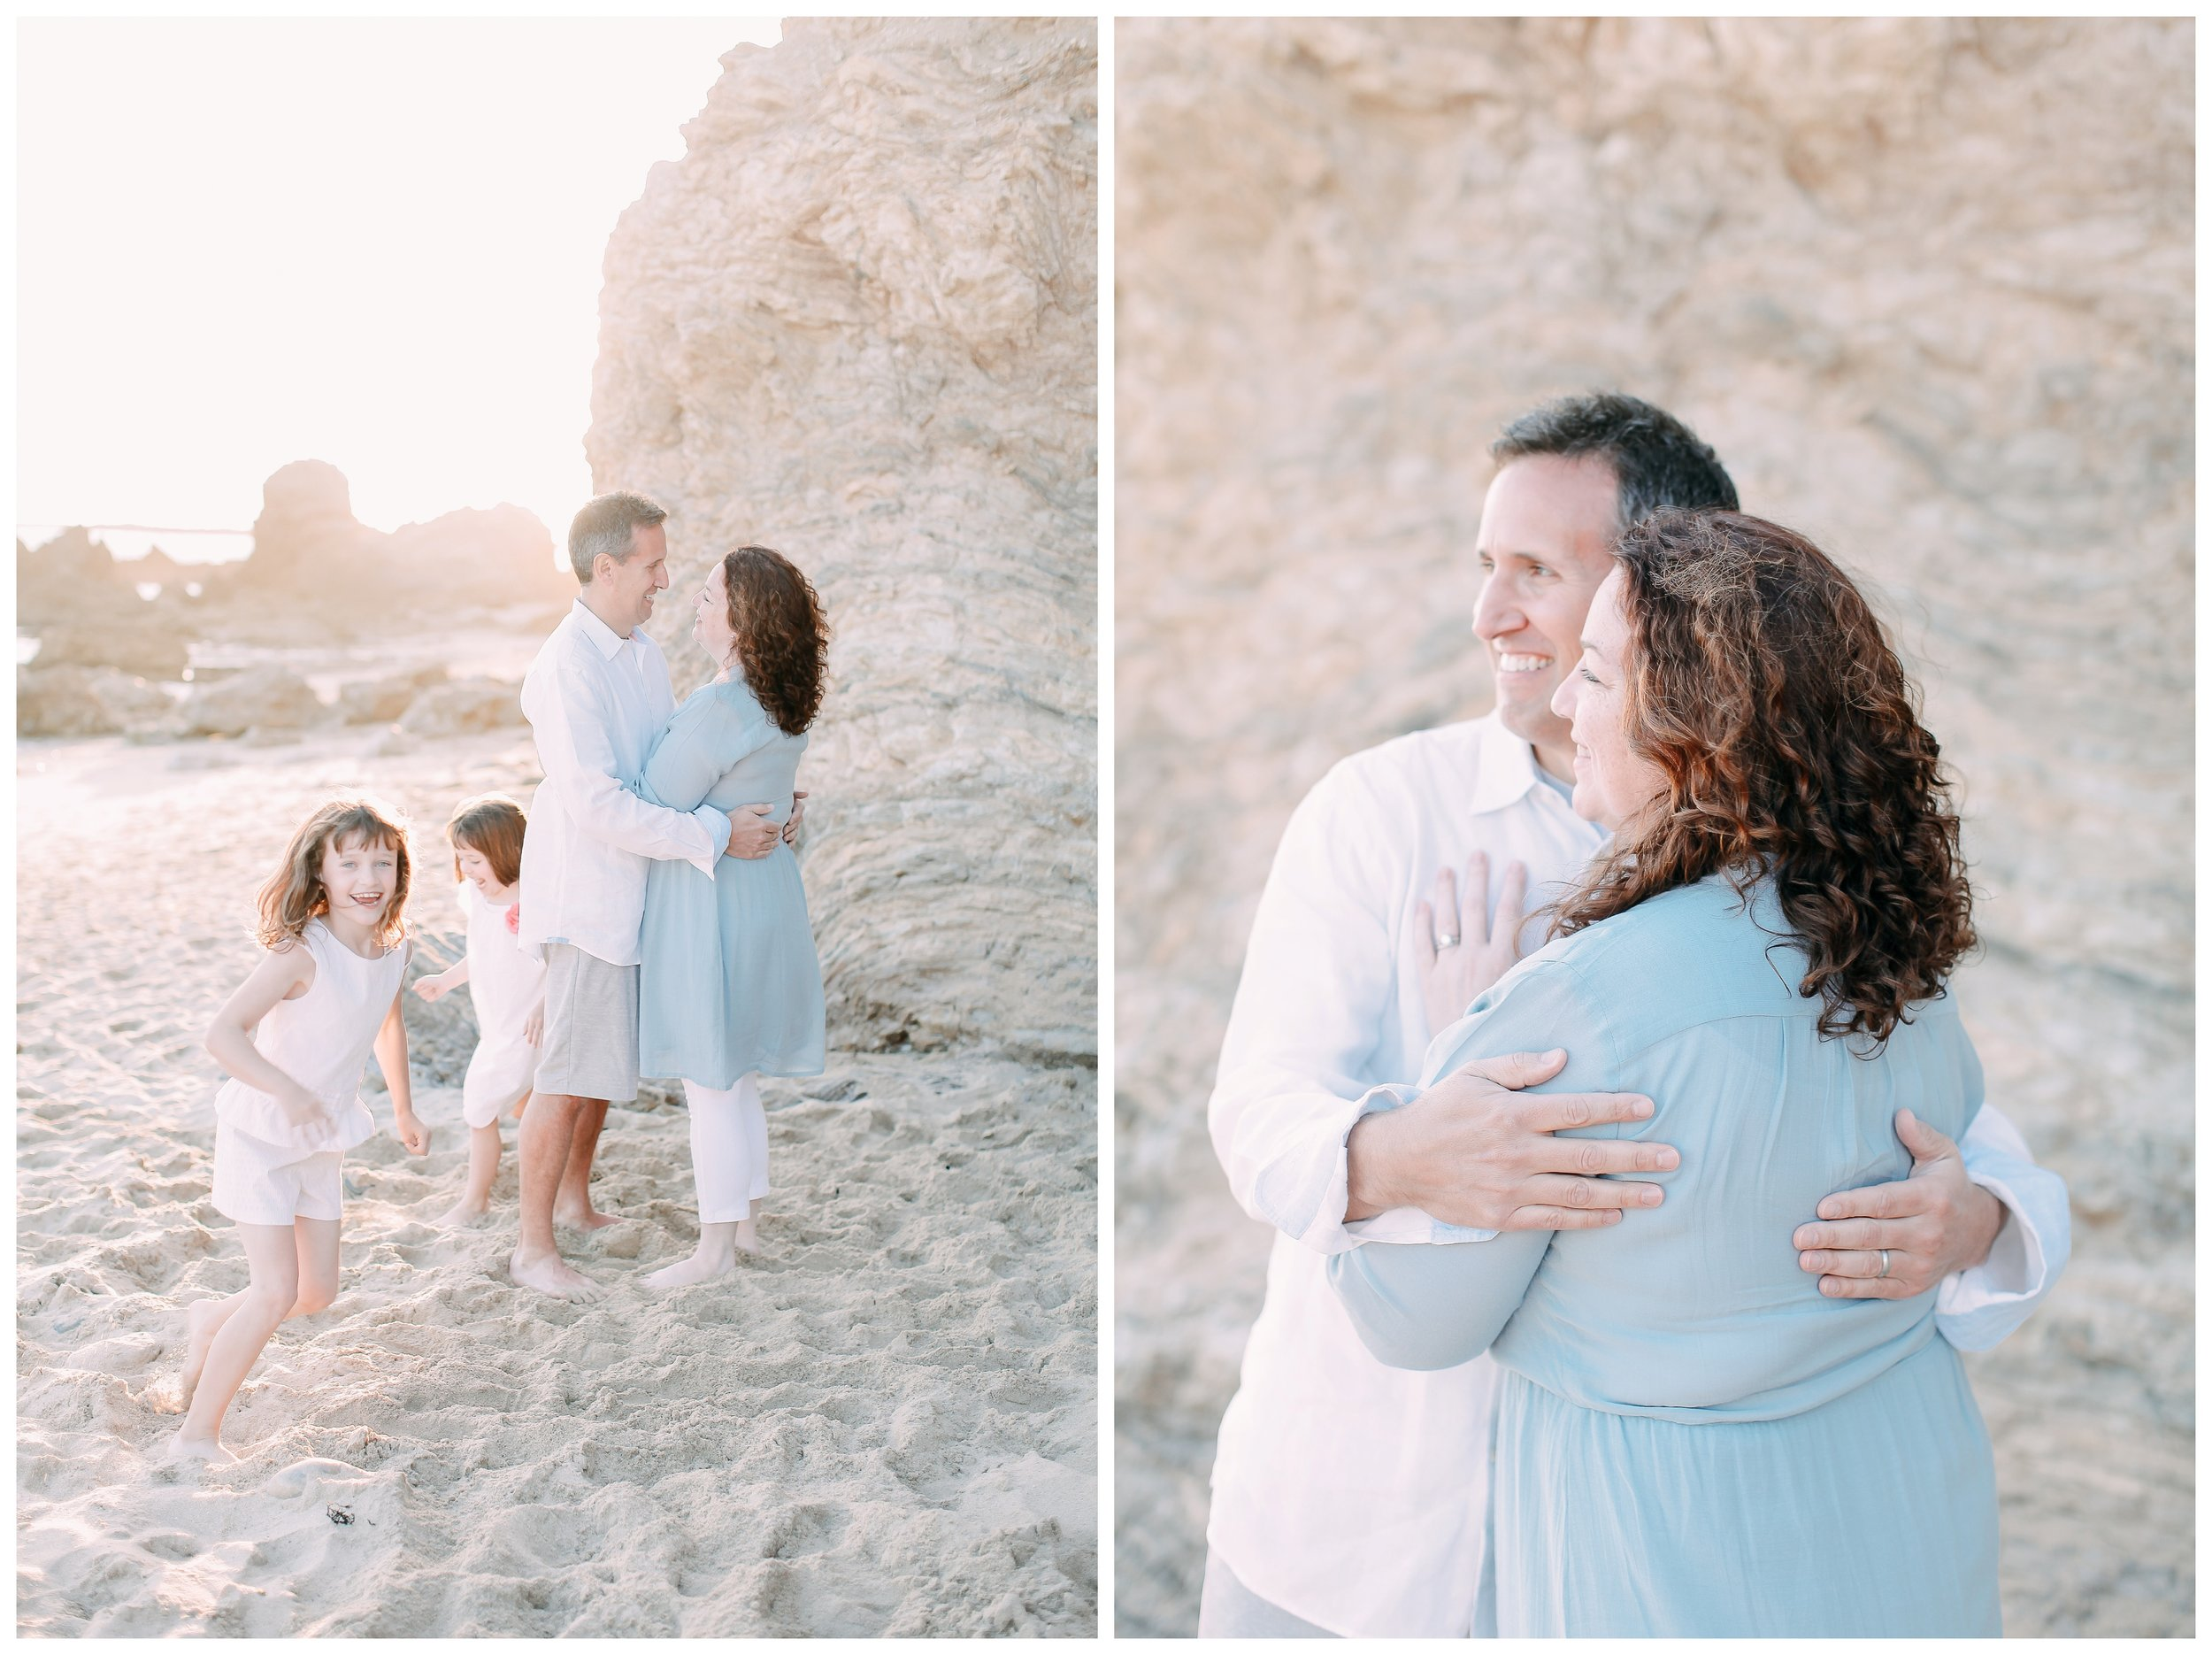 Orange_county_family_photographer_cori_kleckner_photography_0125.jpg